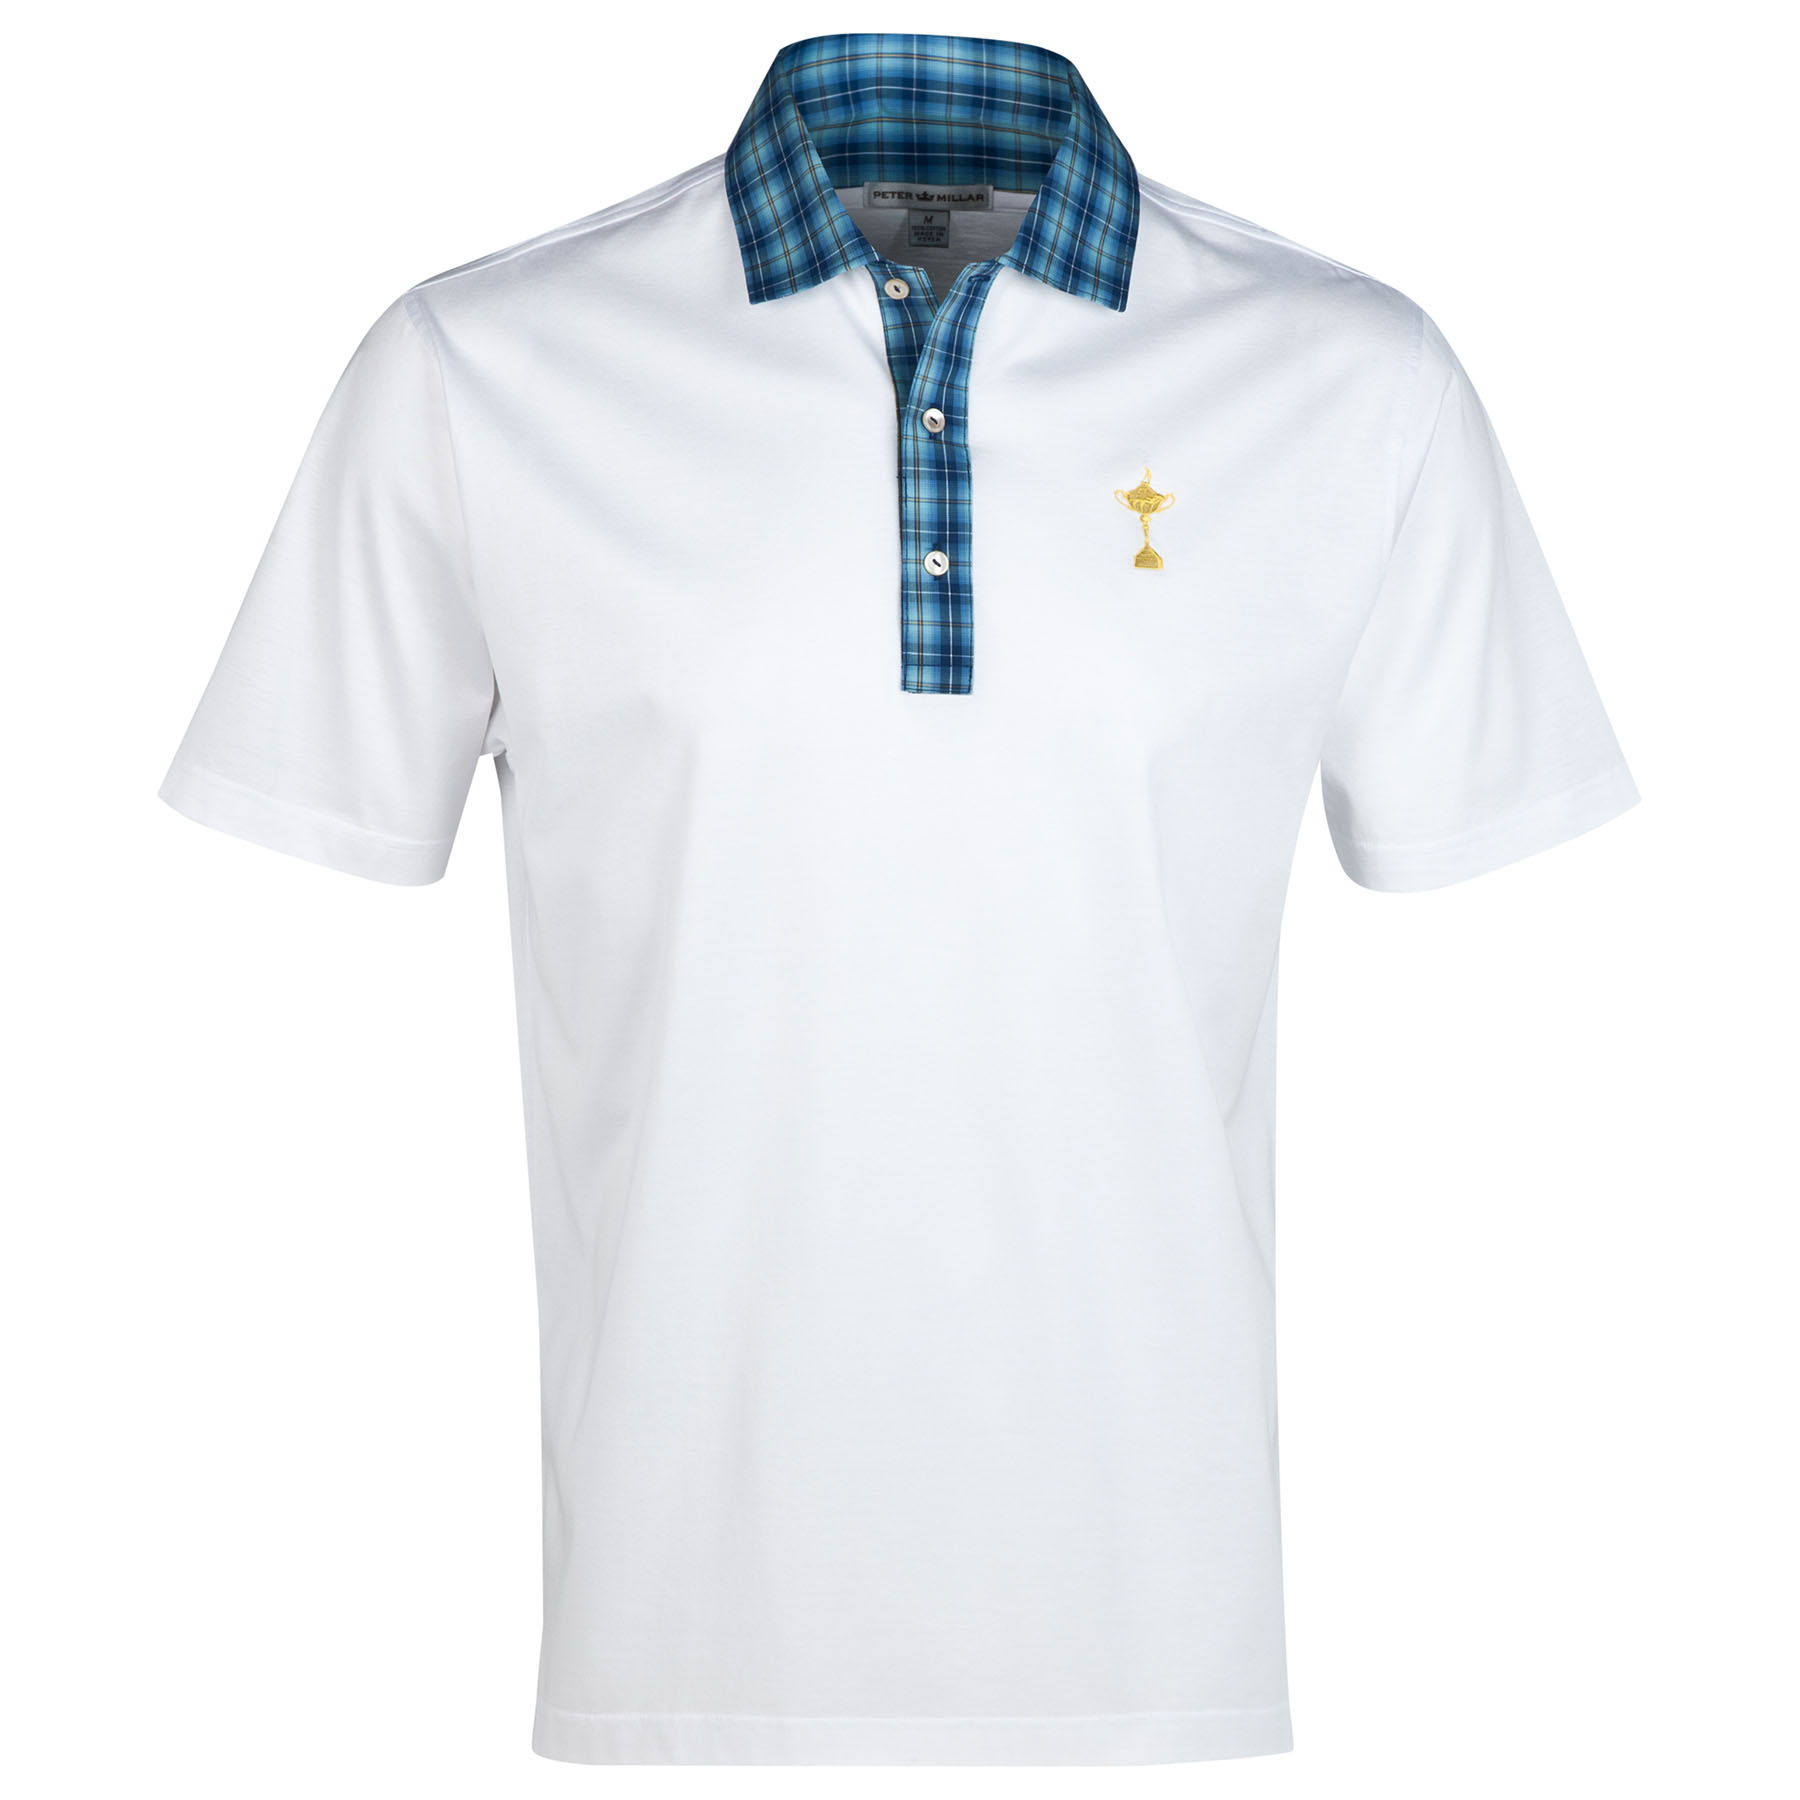 The 2014 Ryder Cup RC Tartan Mercerised Lisle Polo - Sean Woven Collar White